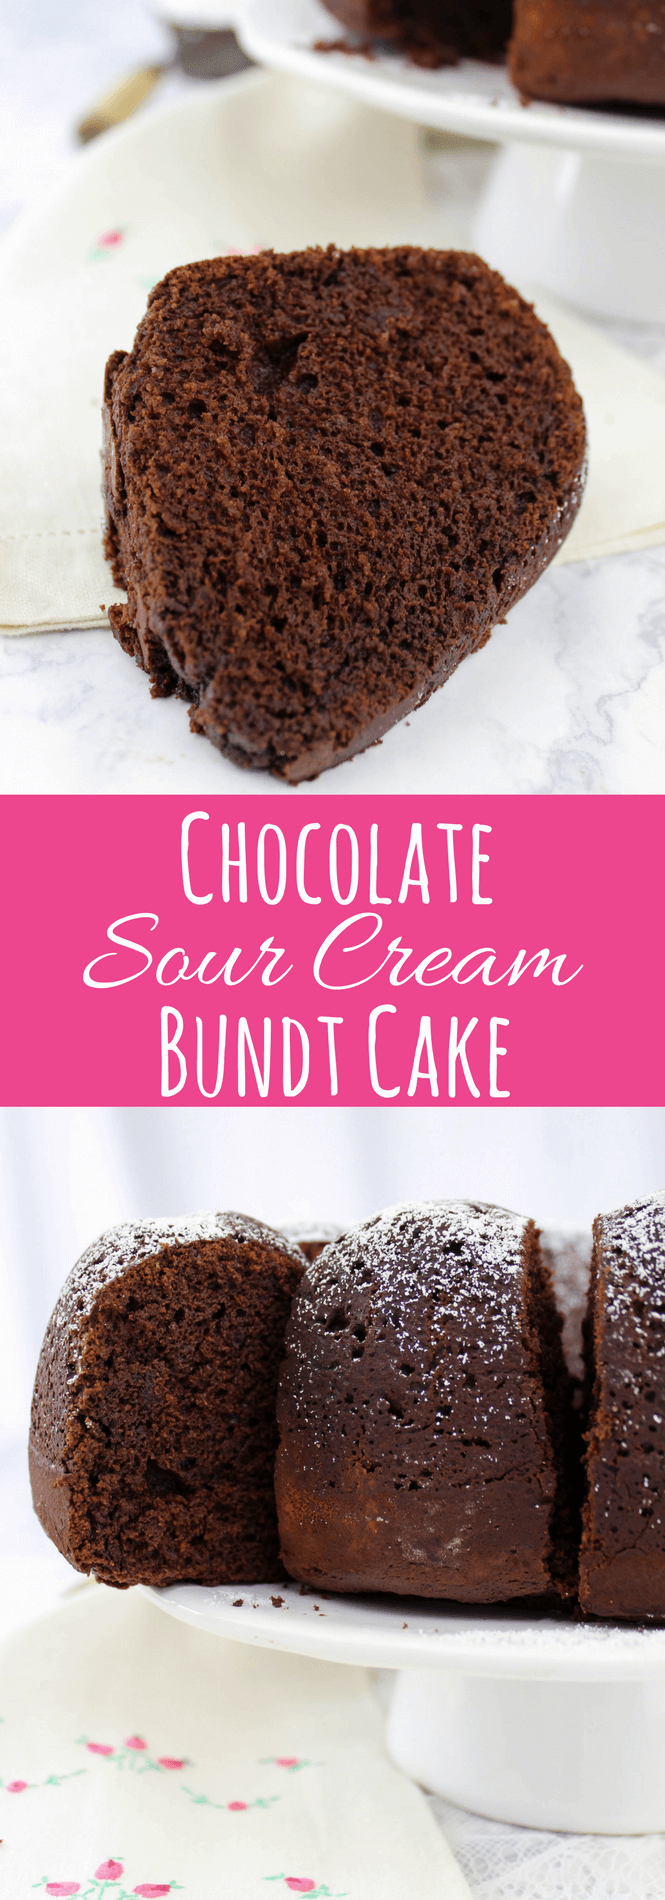 Mexican Chocolate Bundt Cake Recipes